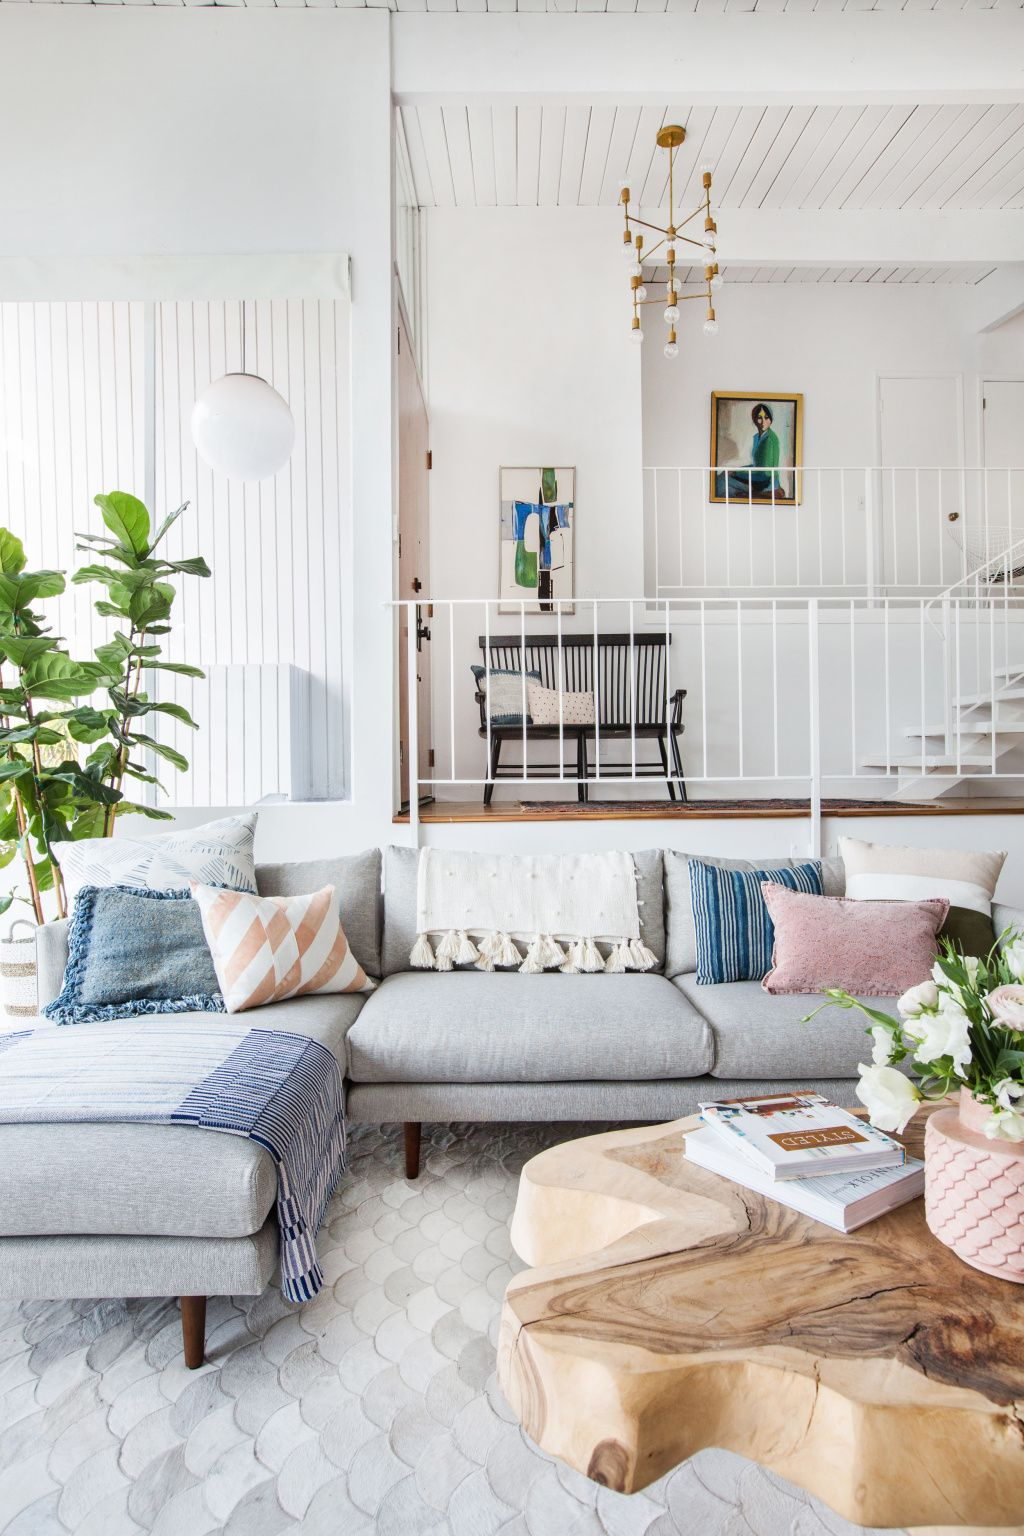 How we styled our living room to sell | Espaces | Pinterest | Living ...